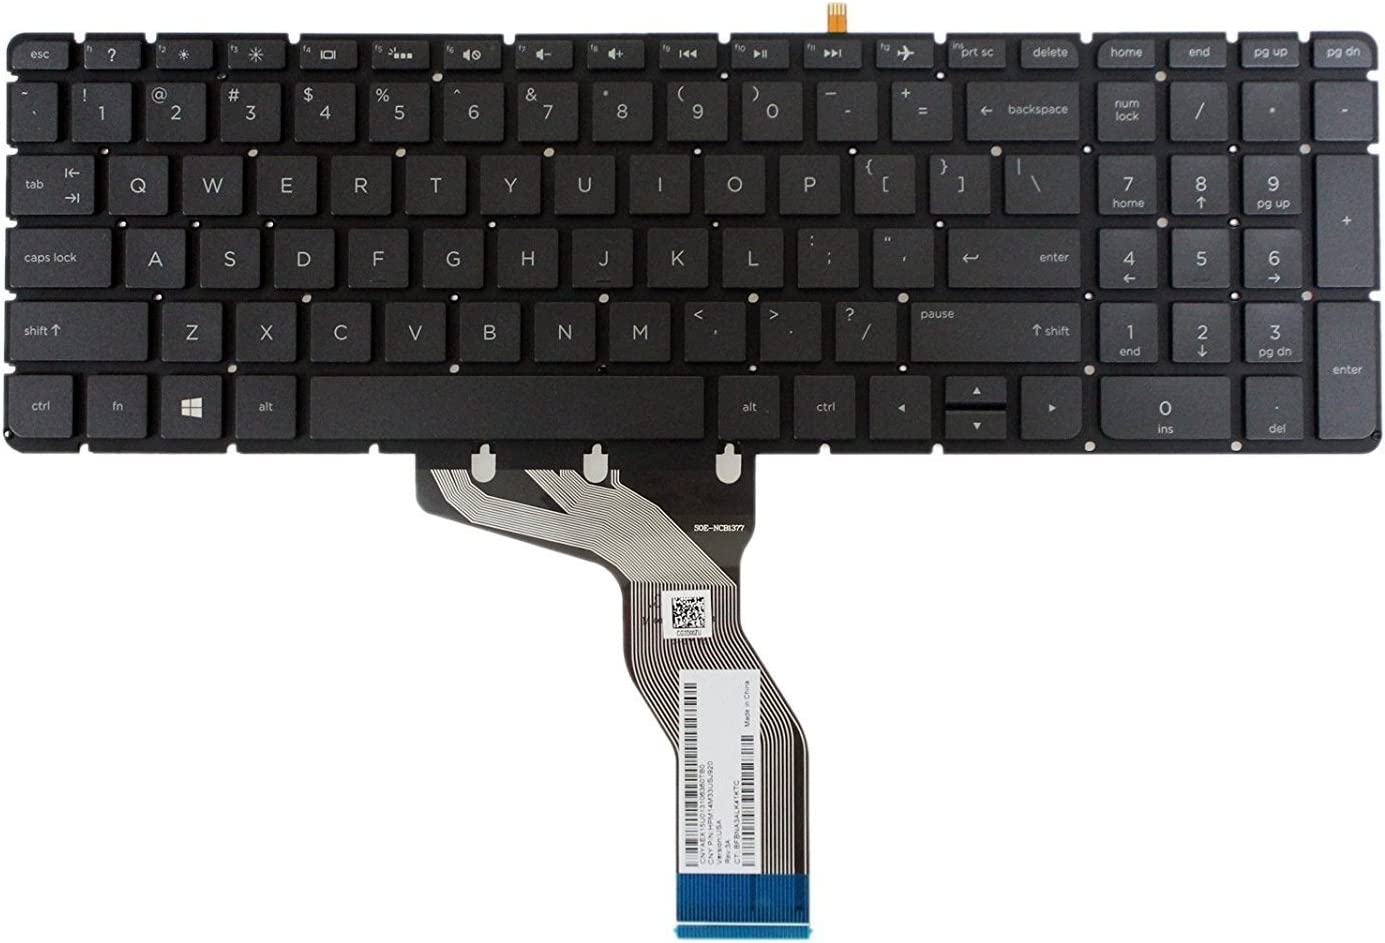 New US Black Backlit English Keyboard Replacement for HP Pavilion 15-aw007ds 15-aw053nr 15-aw008cy 15-aw068nr 15-aw008ds 15-aw077nr 15-aw002au 15-aw050ca Light Backlight Without Frame